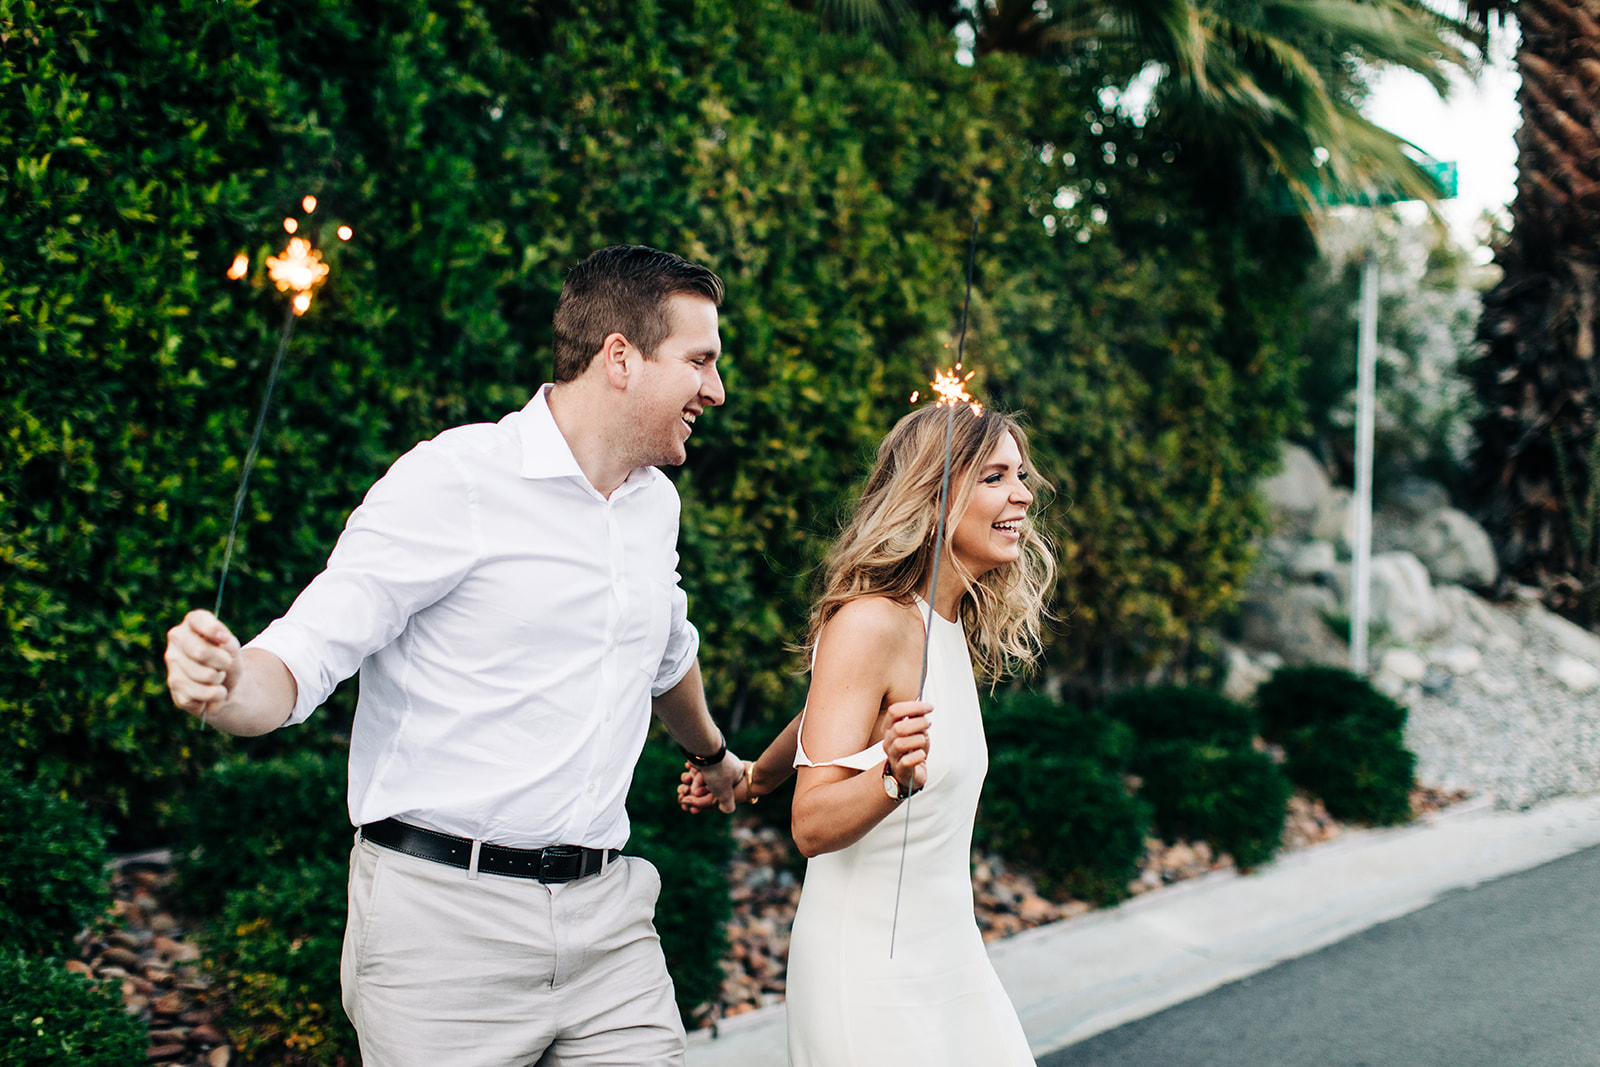 Paulina-Drew_Palm-Springs-Engagement-Photos_Clarisse-Rae_Southern-California-Wedding-Photographer-49